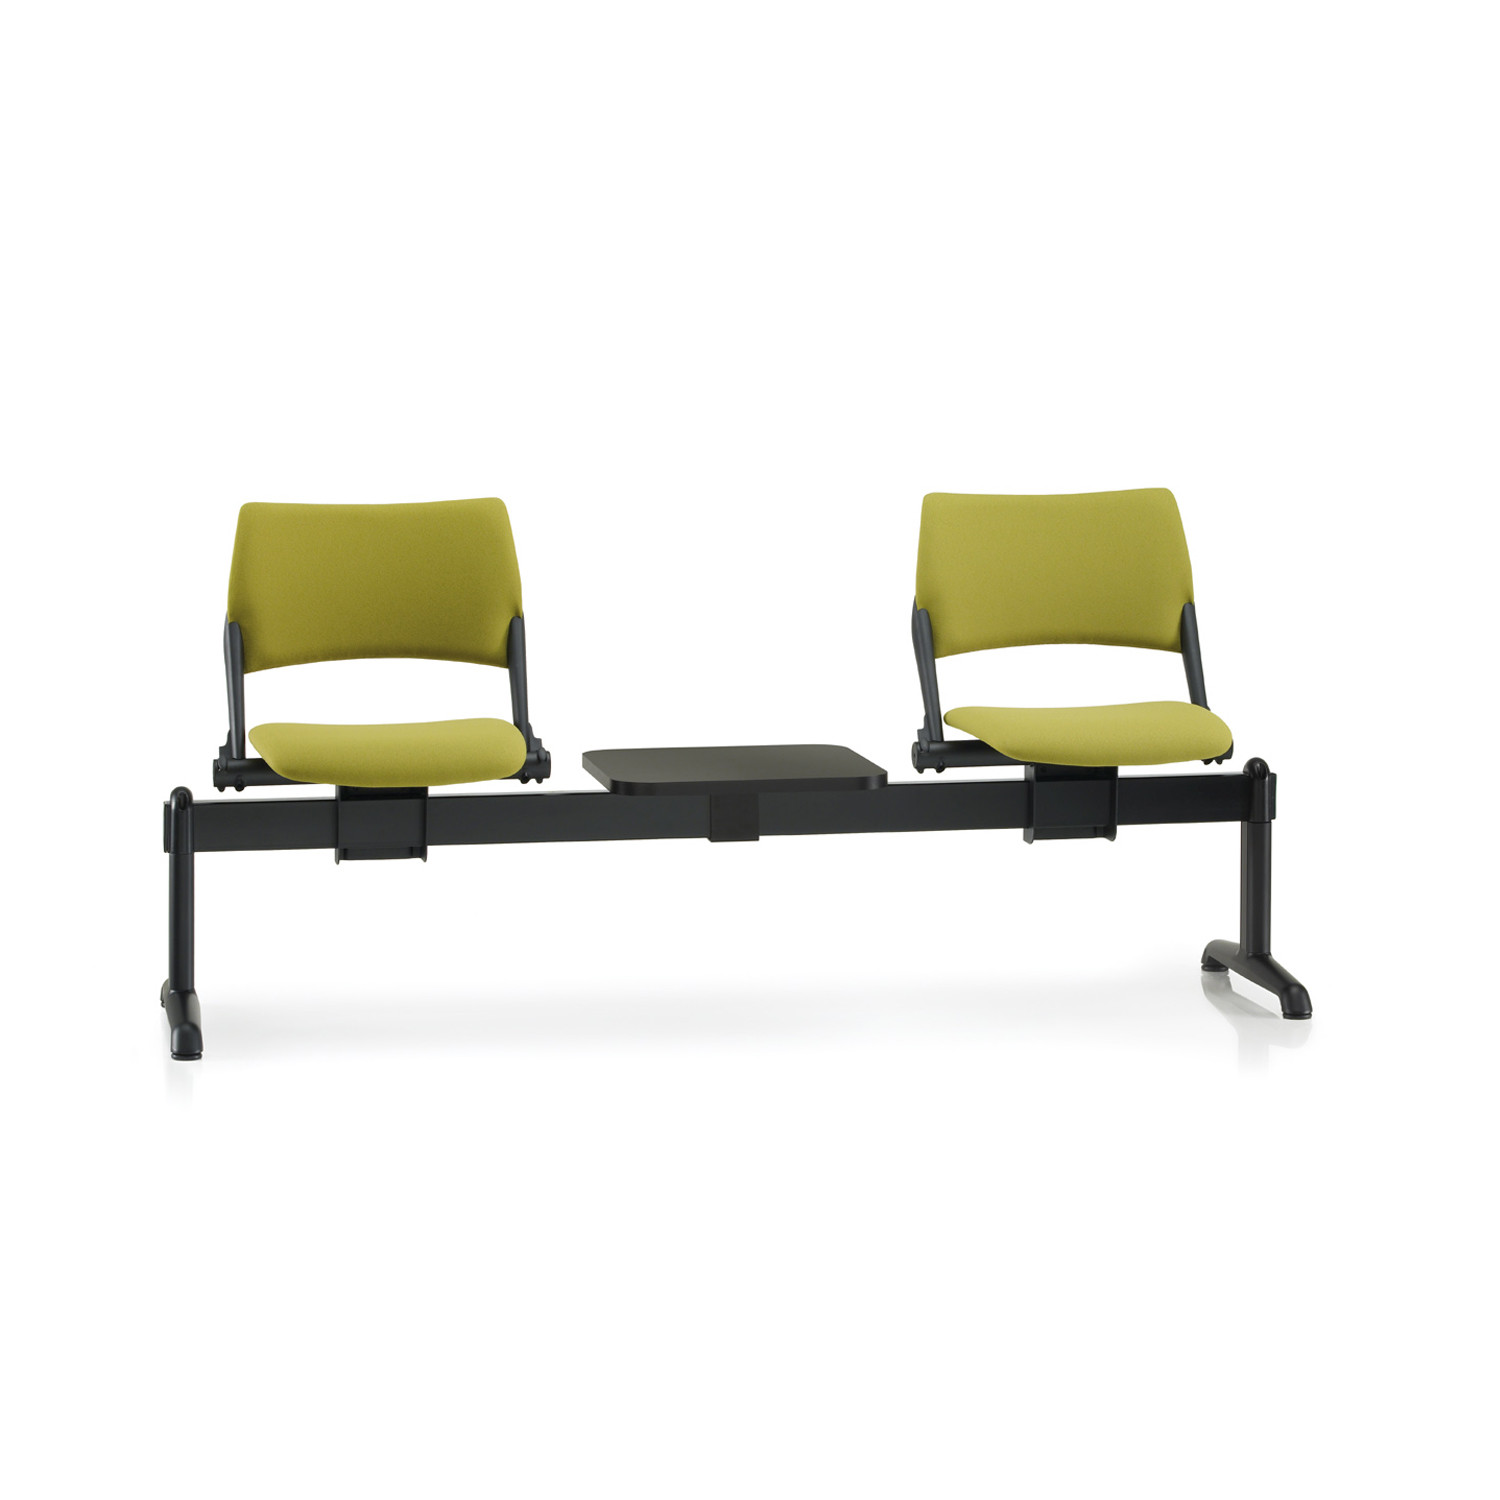 Sum Beam Seating with Black Table